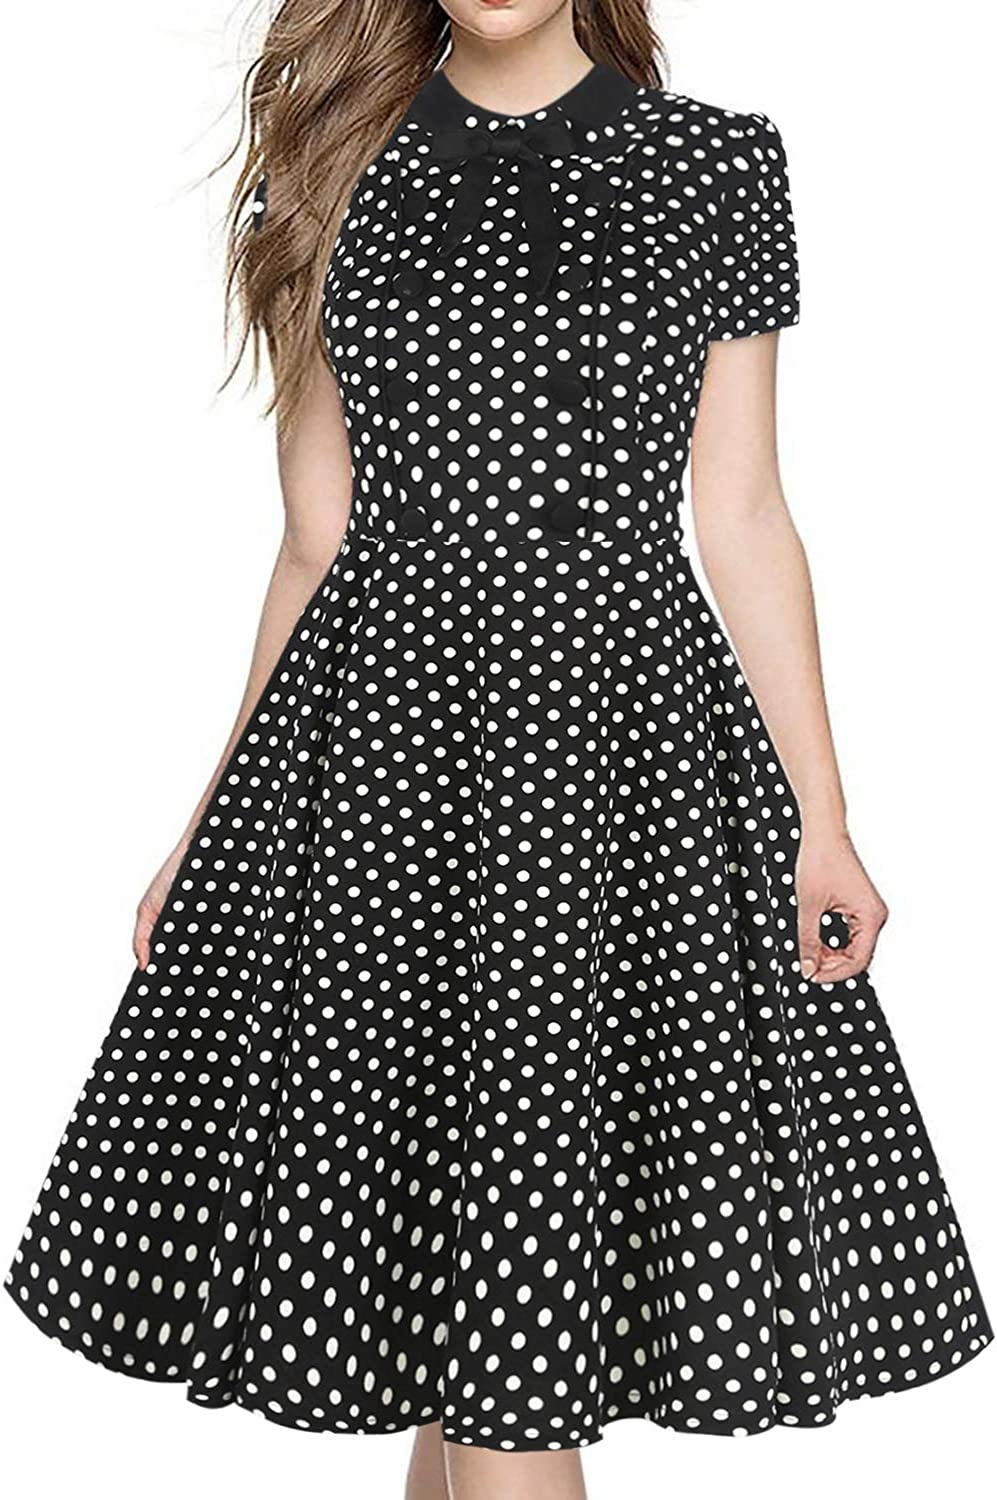 HELYO Women's Rockabilly Bow Neck Plaid Short Sleeve Vintage Work Swing Cocktail Party Dress 212